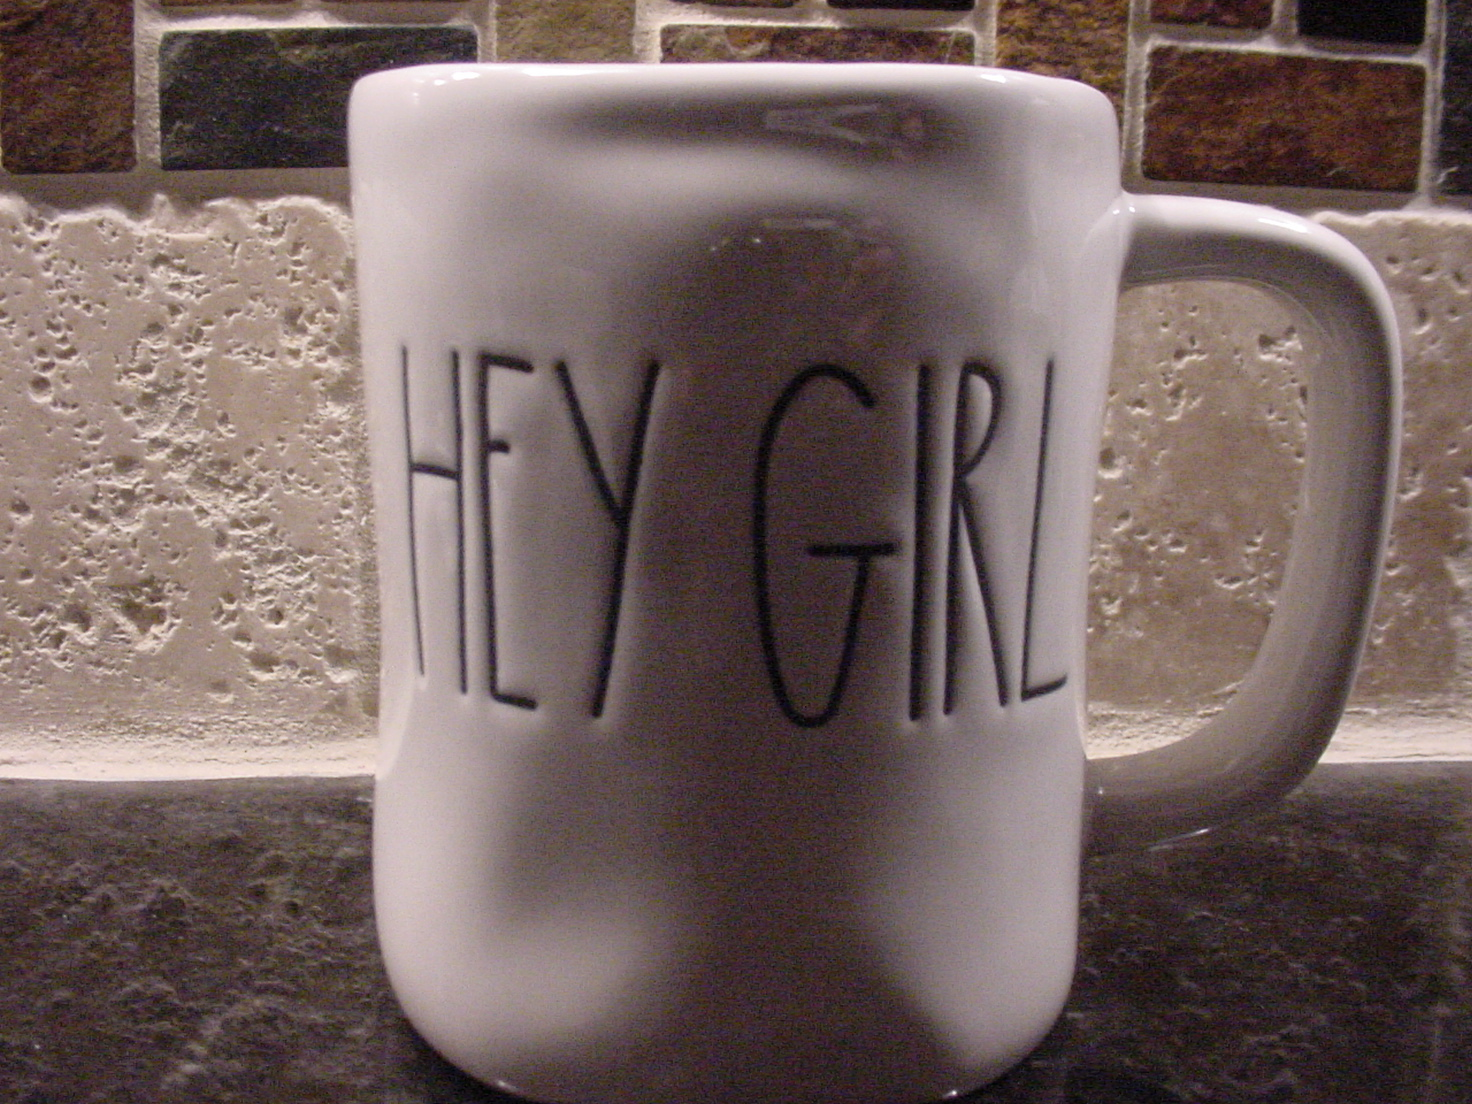 Rae Dunn HEY GIRL Rustic Mug, Ivory with Black Letters, New!